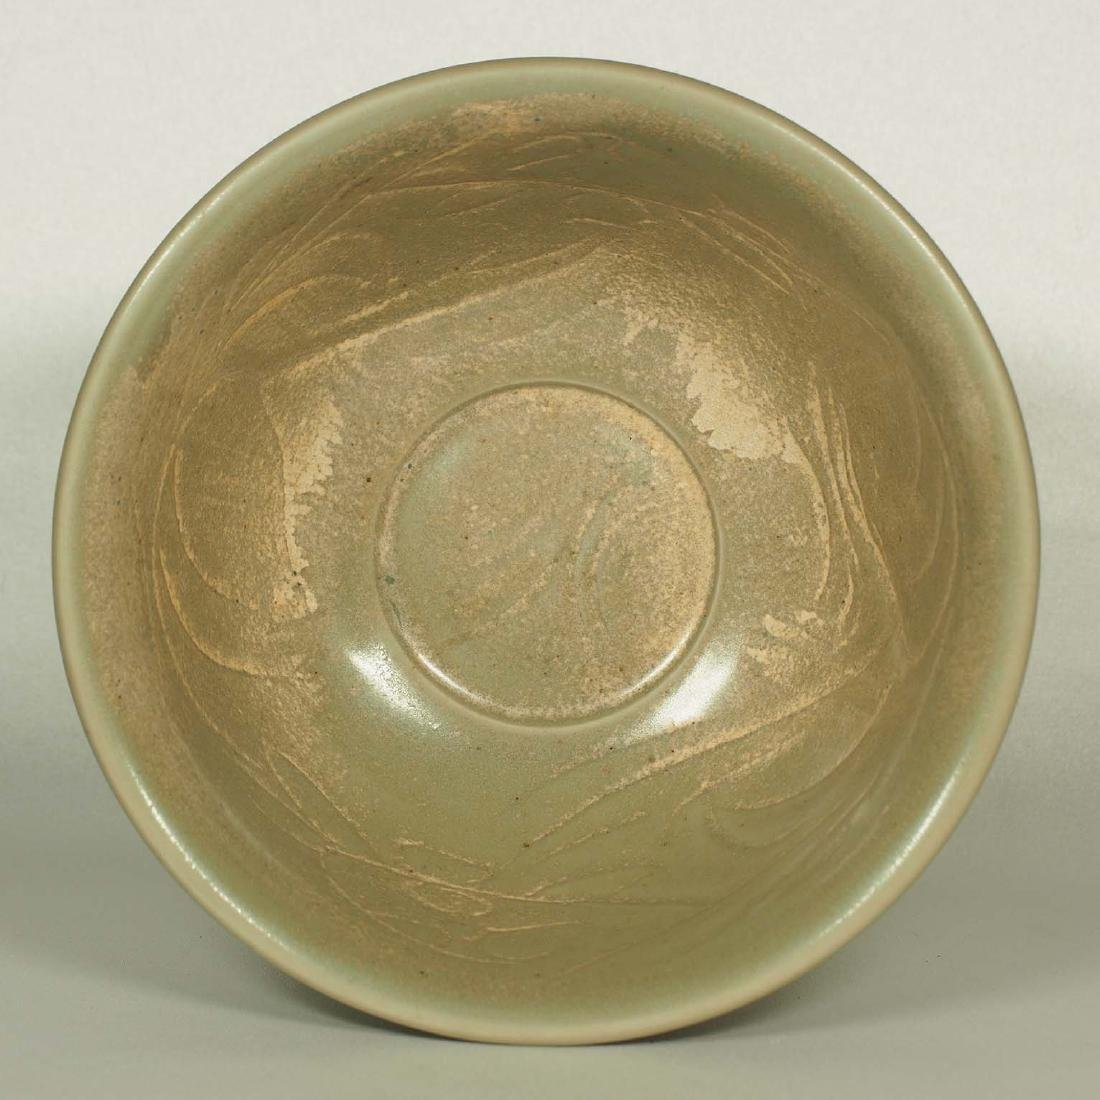 Longquan Bowl with Incised Design, Ming Dynasty